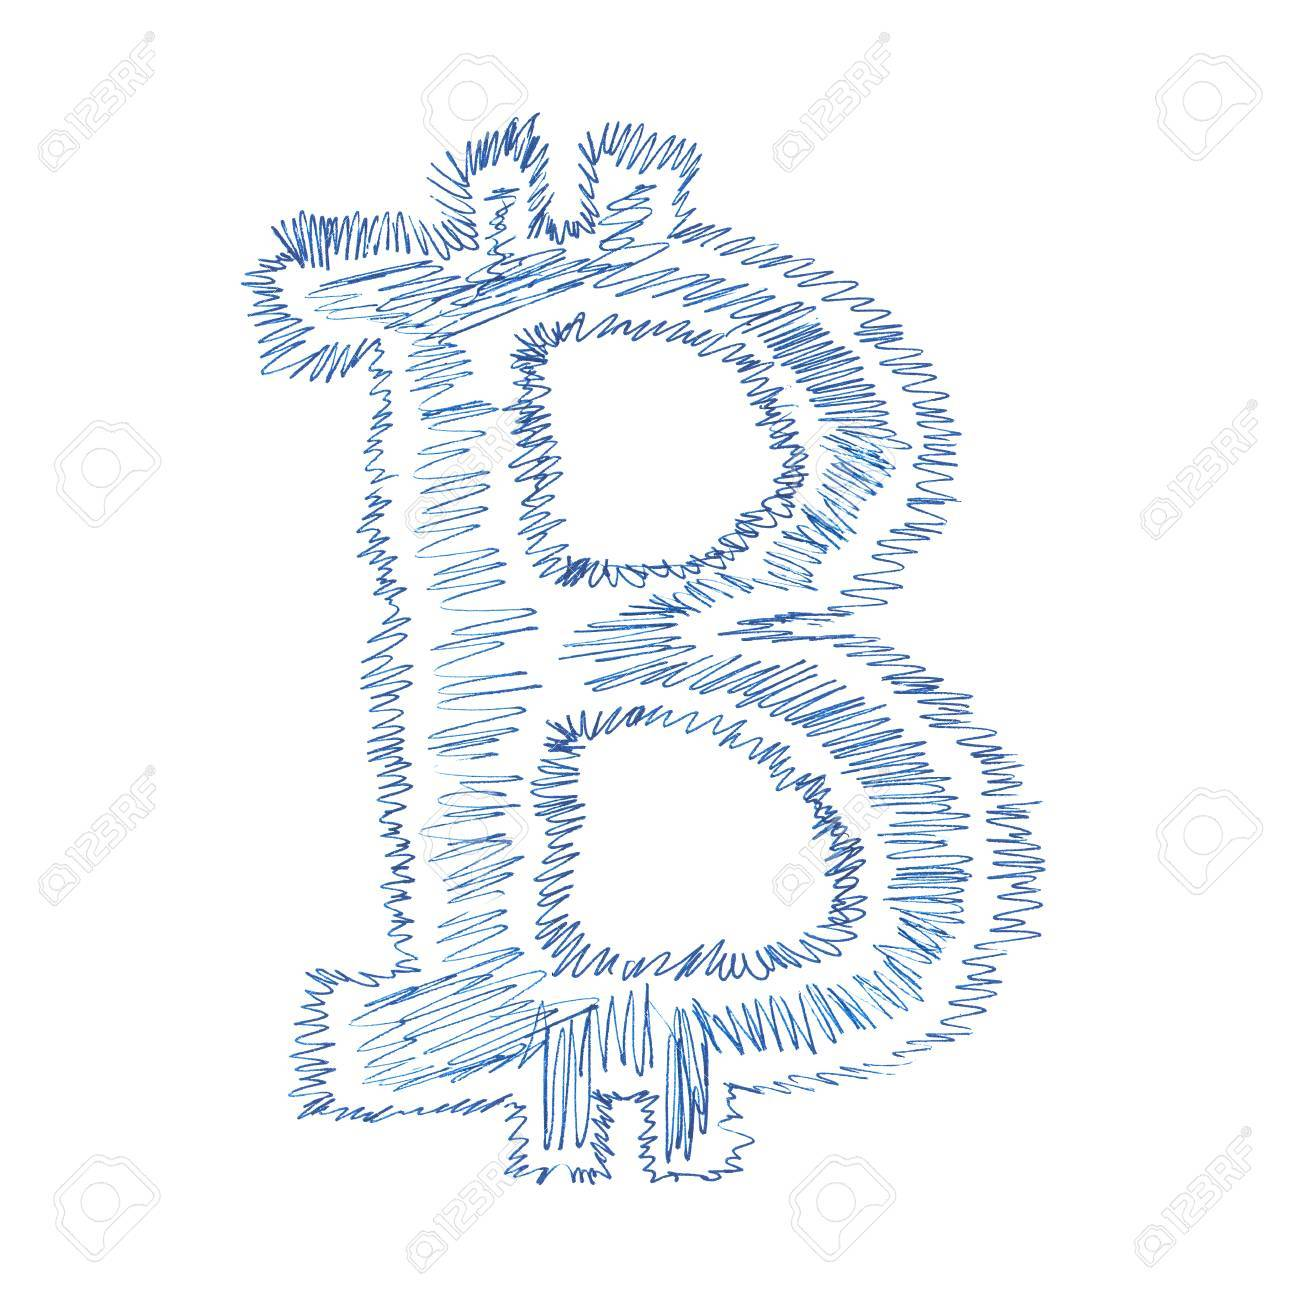 Simple Bitcoin Hand Drawn Symbol Of A Digital Decentralized Crypto